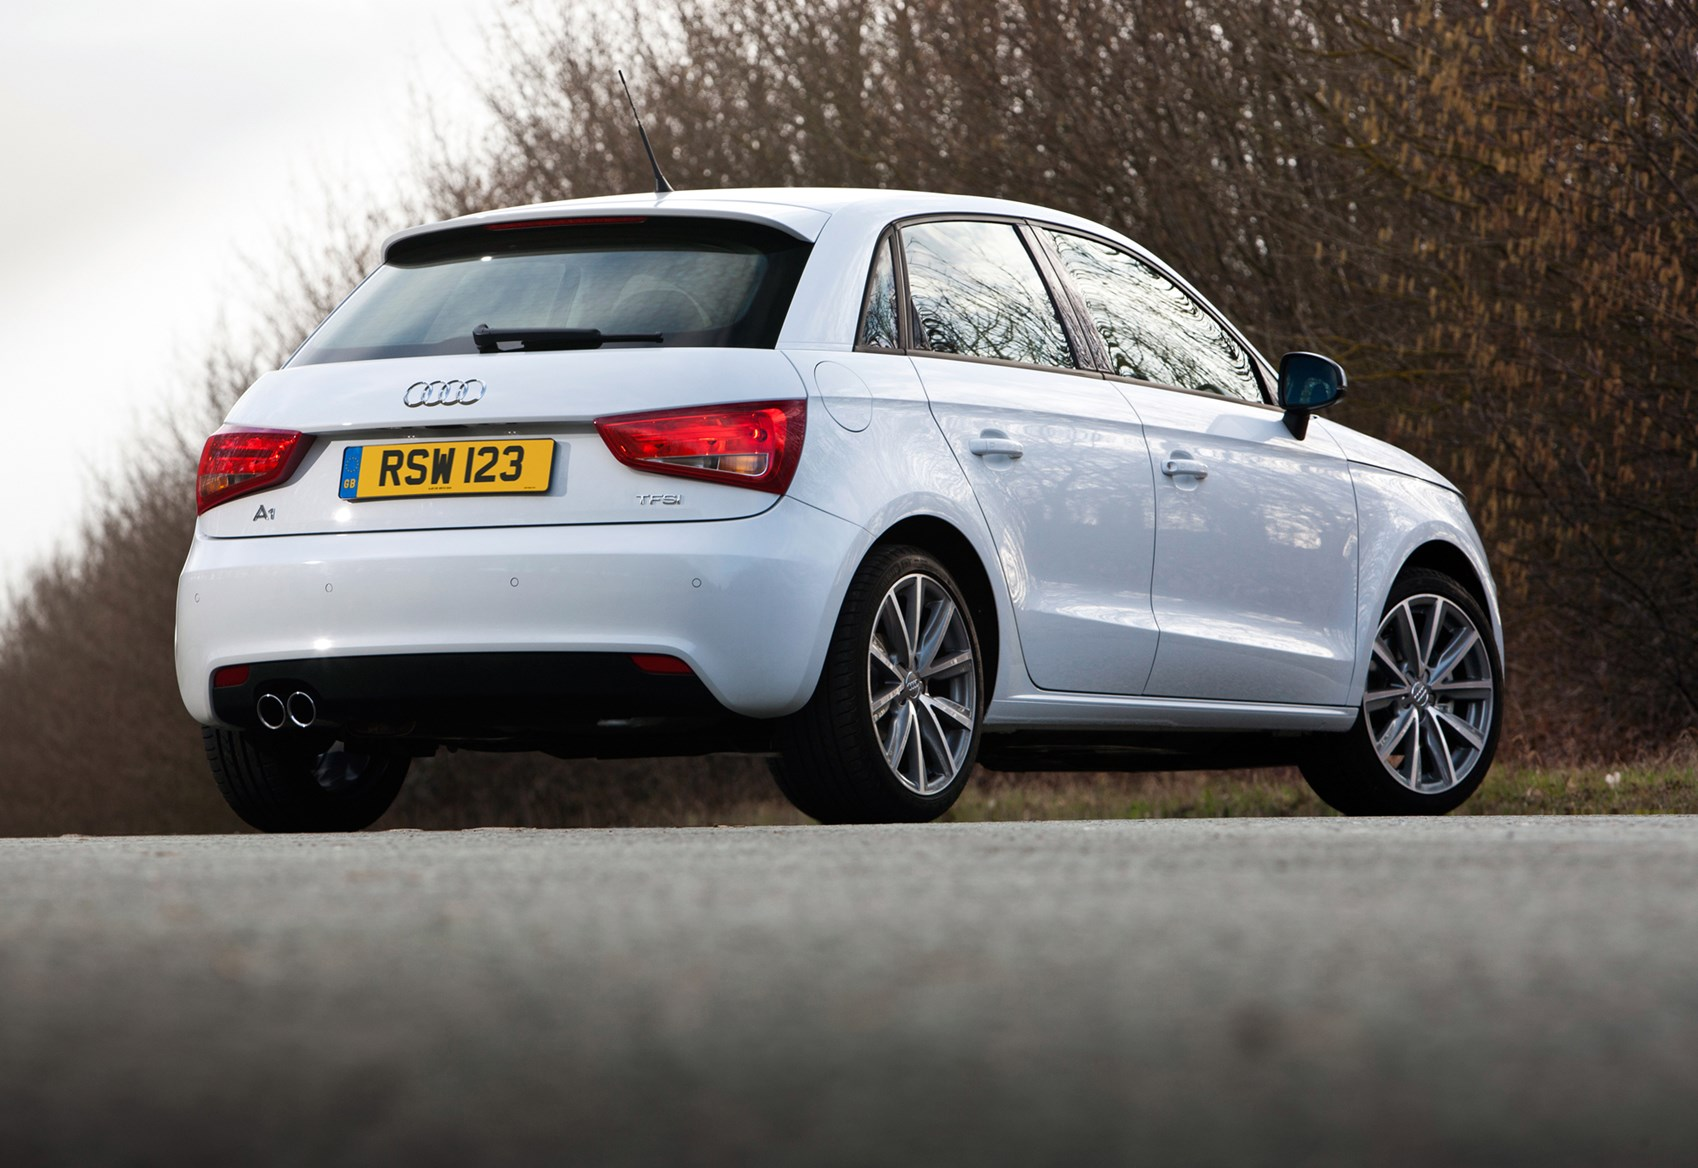 Nice wallpapers Audi A1 1698x1168px